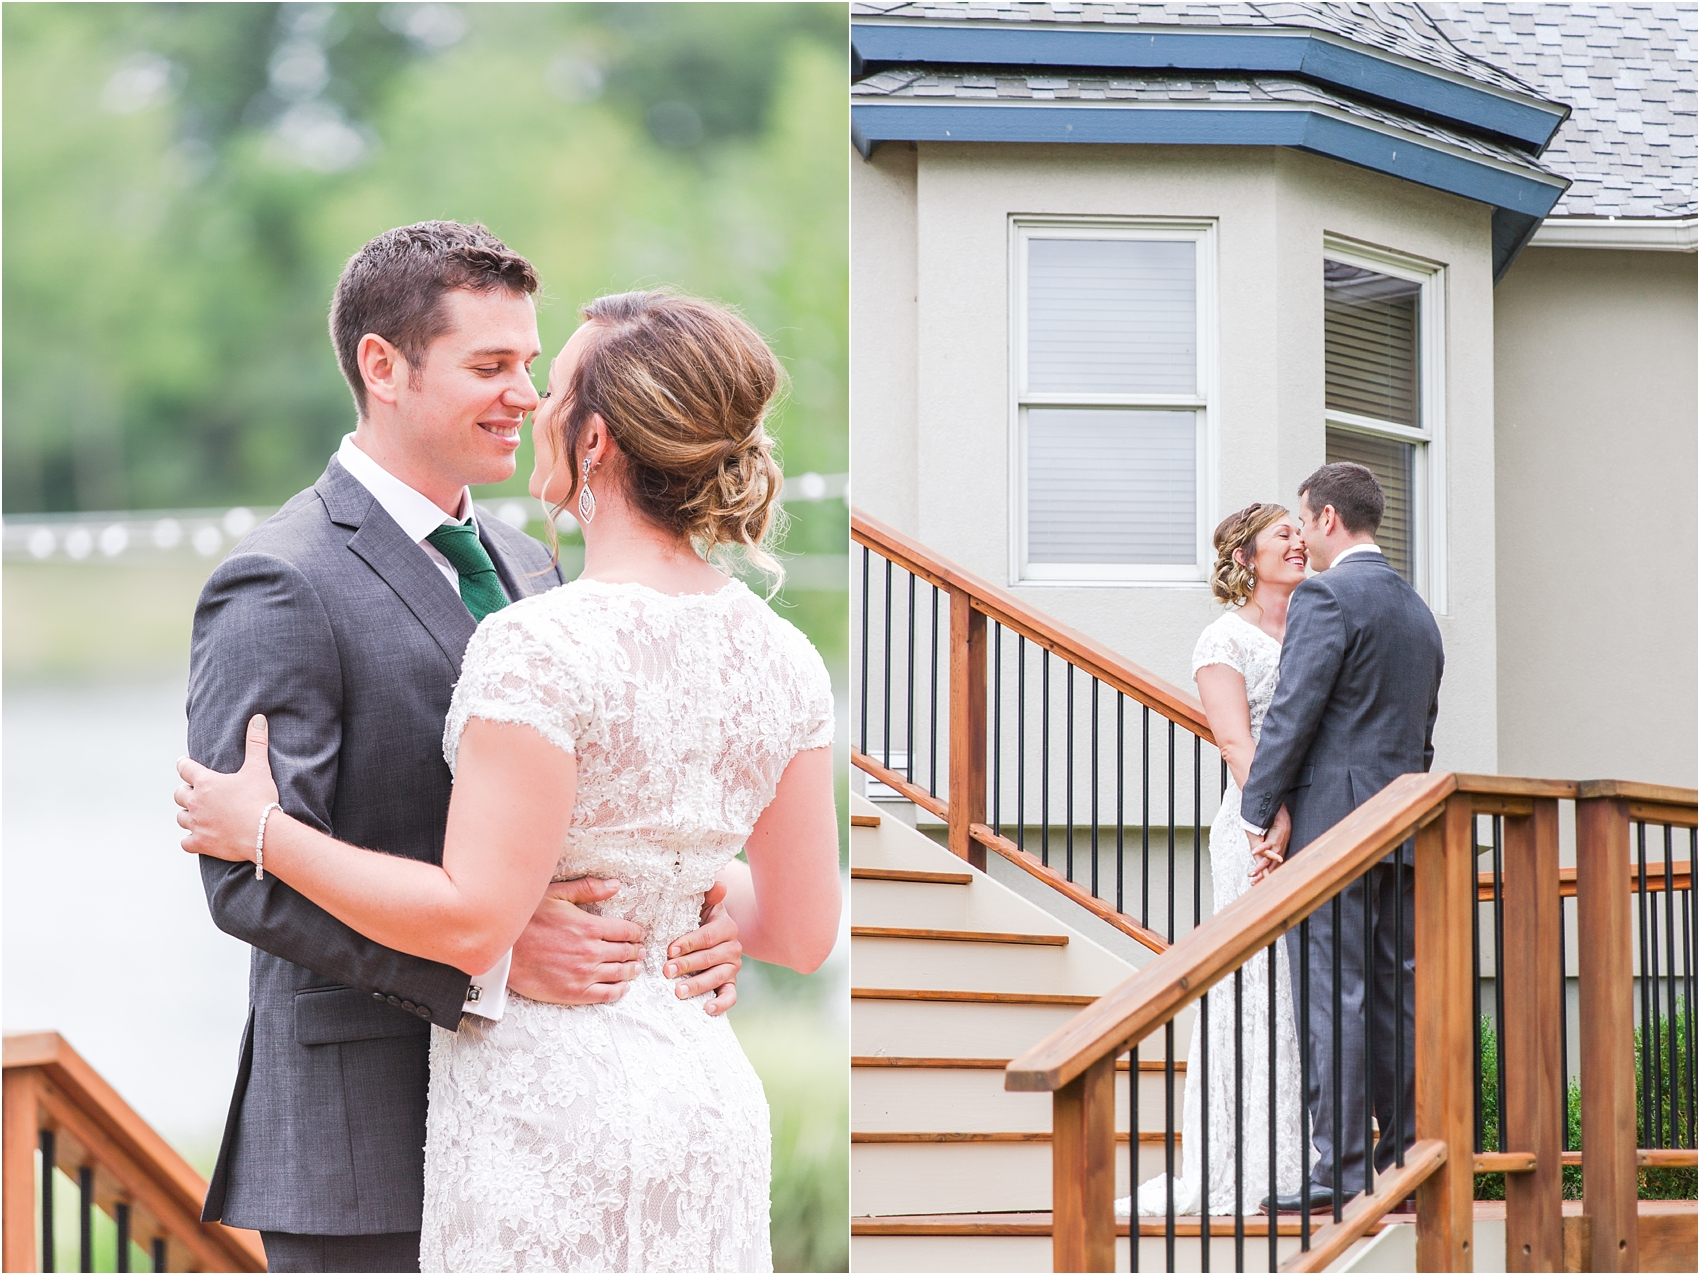 romantic-intimate-backyard-wedding-photos-at-private-estate-in-ann-arbor-mi-by-courtney-carolyn-photography_0029.jpg